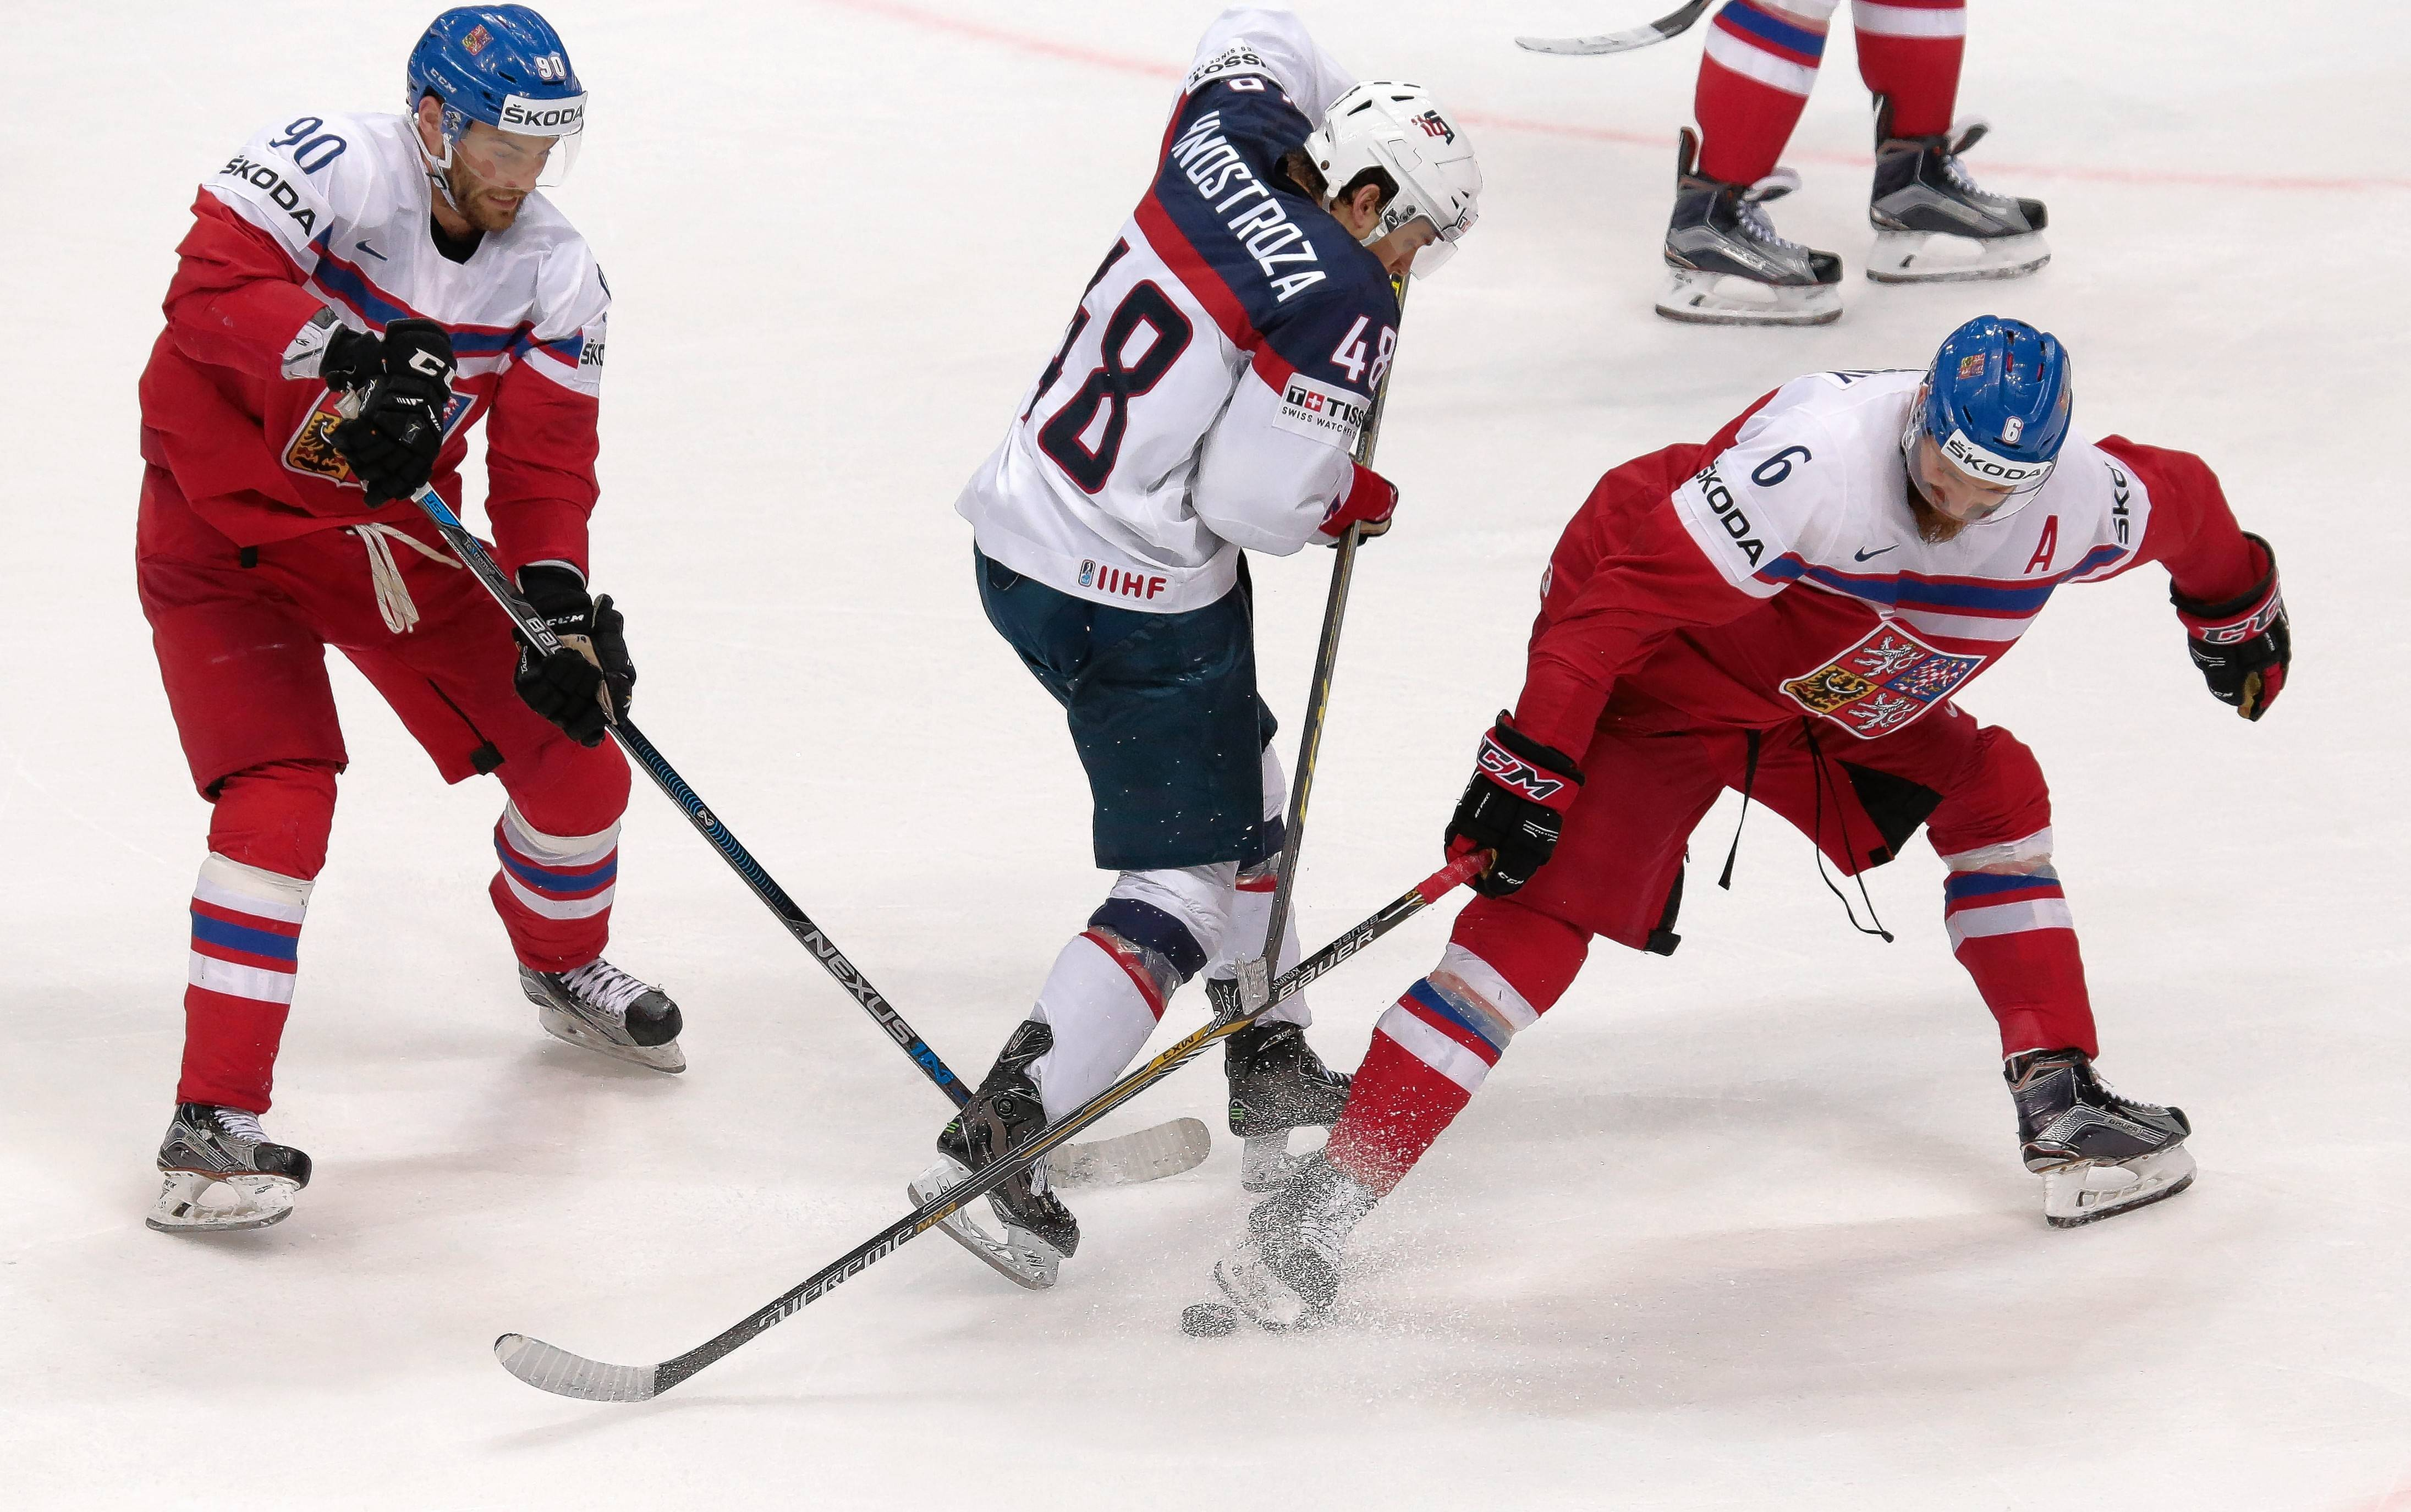 Vince Hinostroza of Team USA battles Michal Kempny, right, for the puck during the Ice Hockey World Championships quarterfinal match between Czech Republic and United States in Moscow last week. Kempny has agreed to a one-year deal with the Blackhawks.